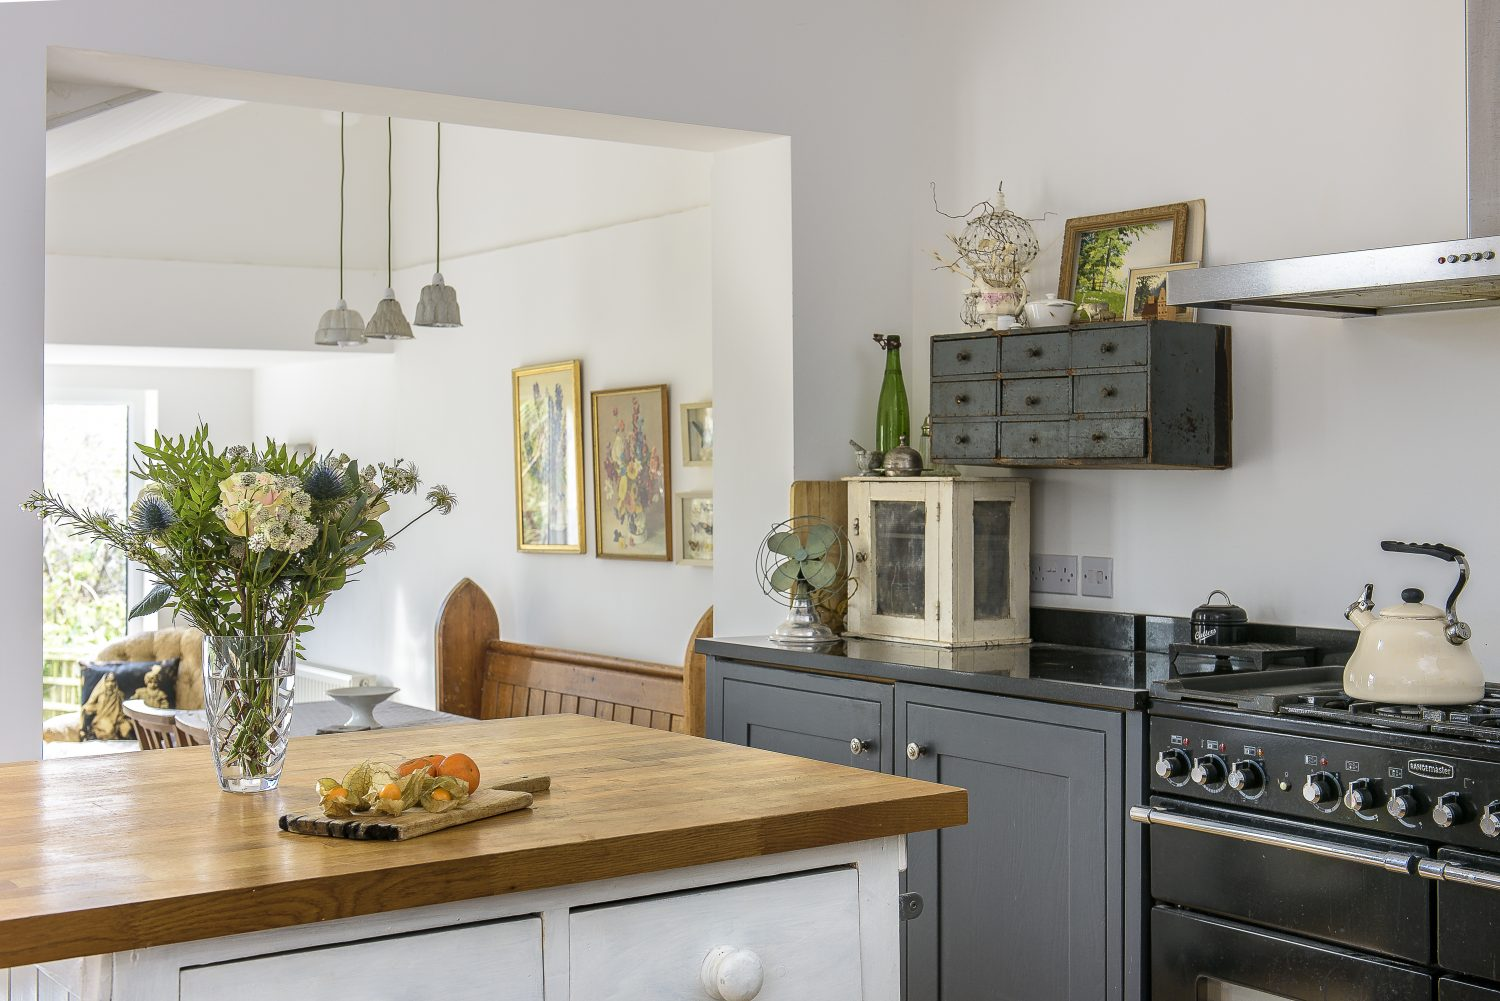 Susan created the central island from two old dressers with a new wooden worktop on top. Storage in this room includes an old white meat safe, sitting on the counter, with a set of vintage industrial drawers, painted black, on the wall above it.